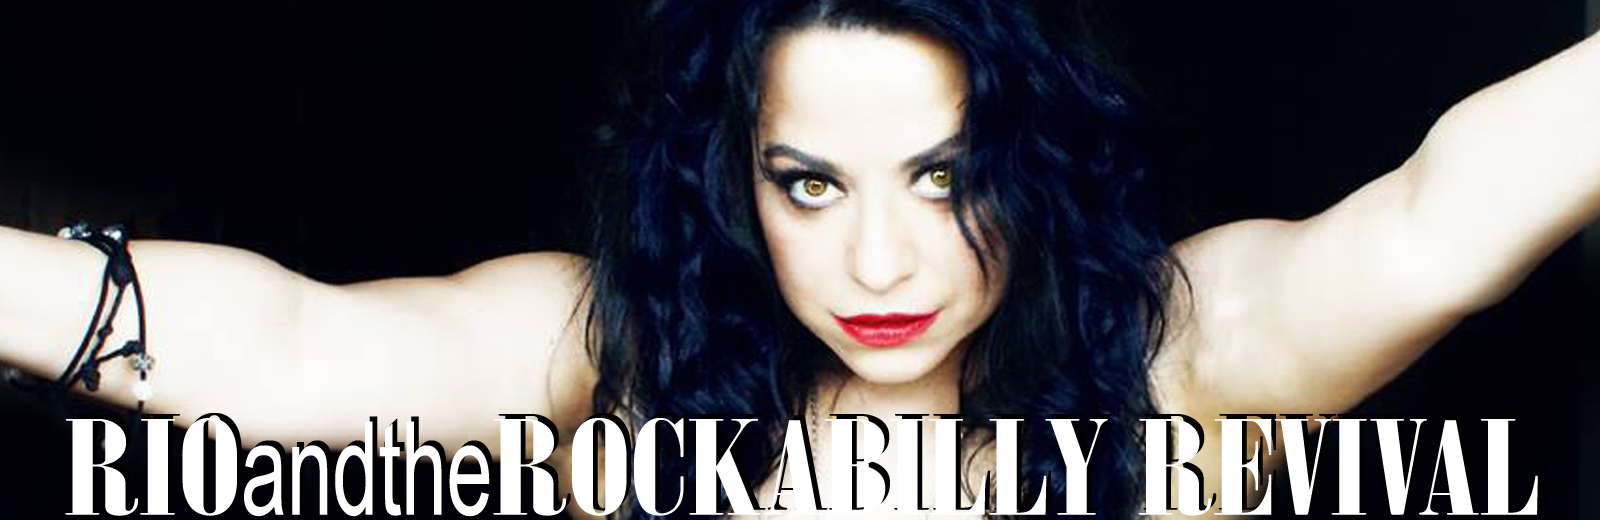 Rio and the Rockabilly Revival